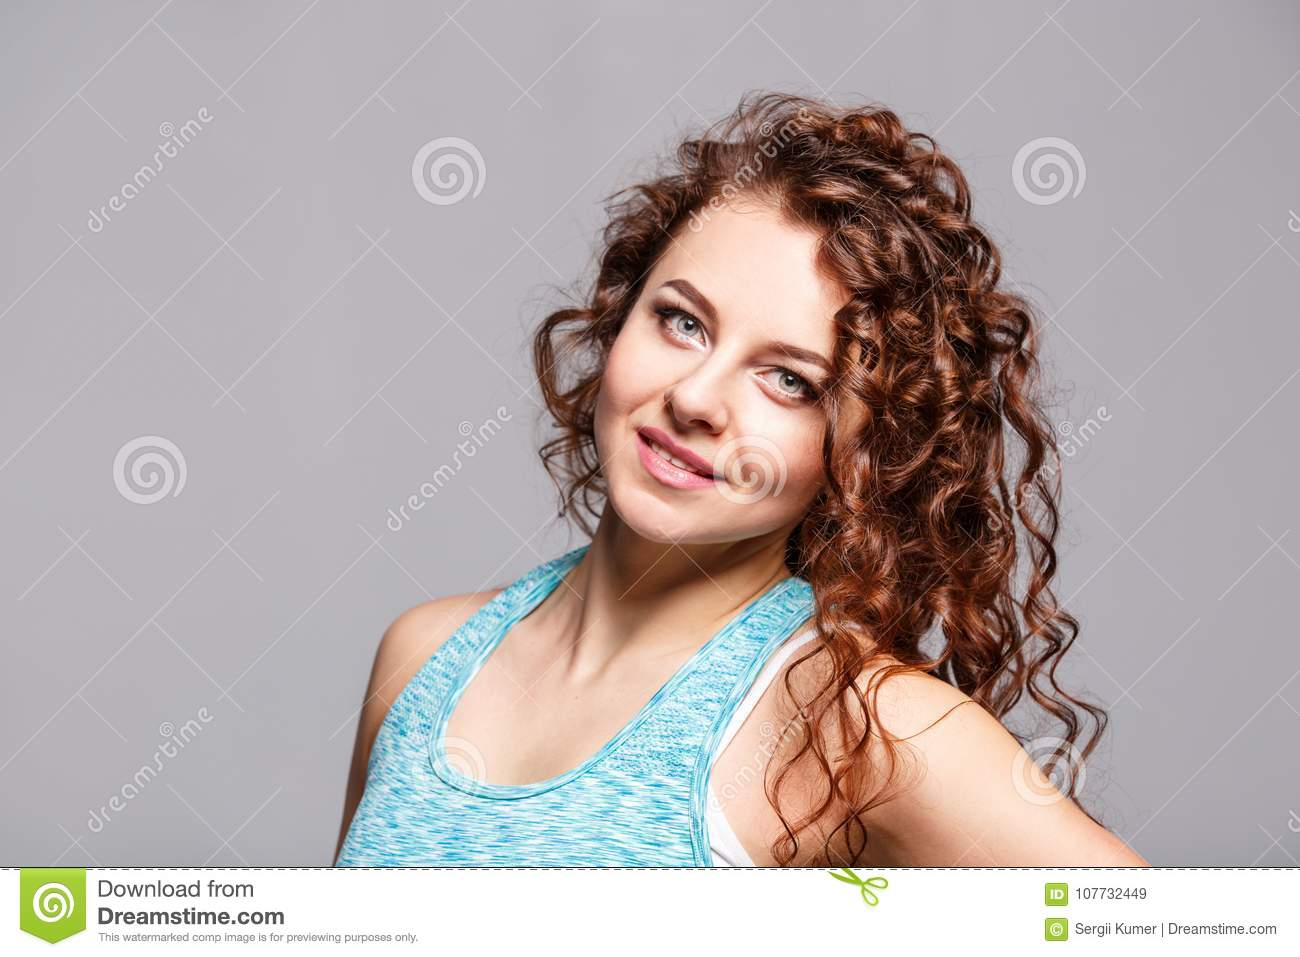 b97d5f27 Cheerful young fitness woman standing against grey background with copy  space